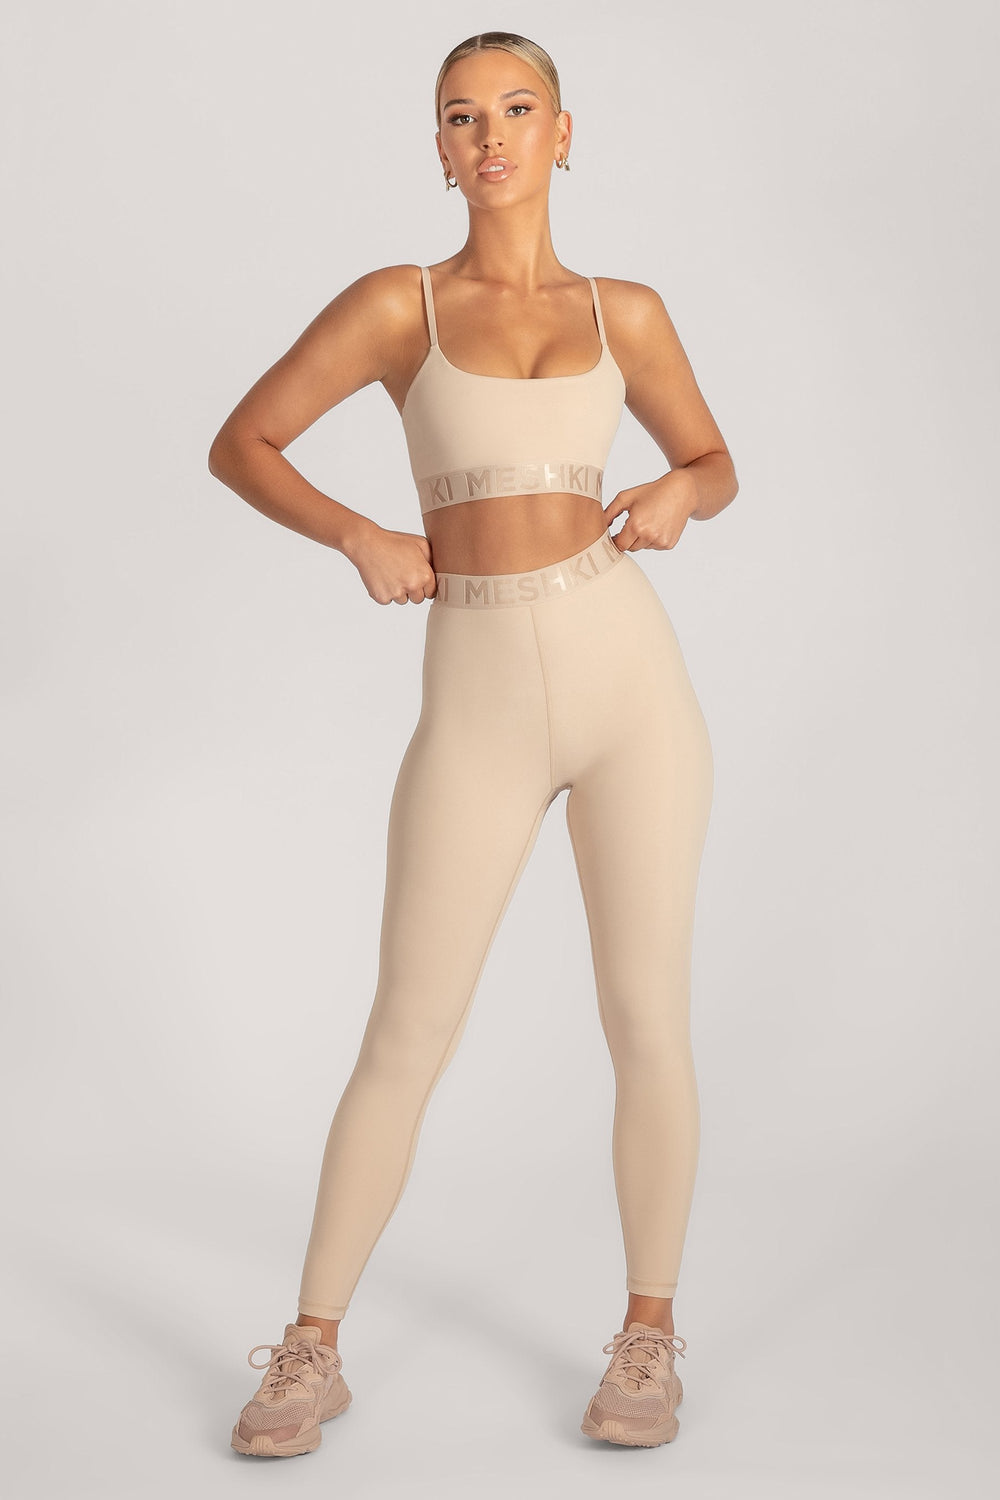 Acacia Meshki Full Length Leggings - Nude - MESHKI ?id=16076117049419